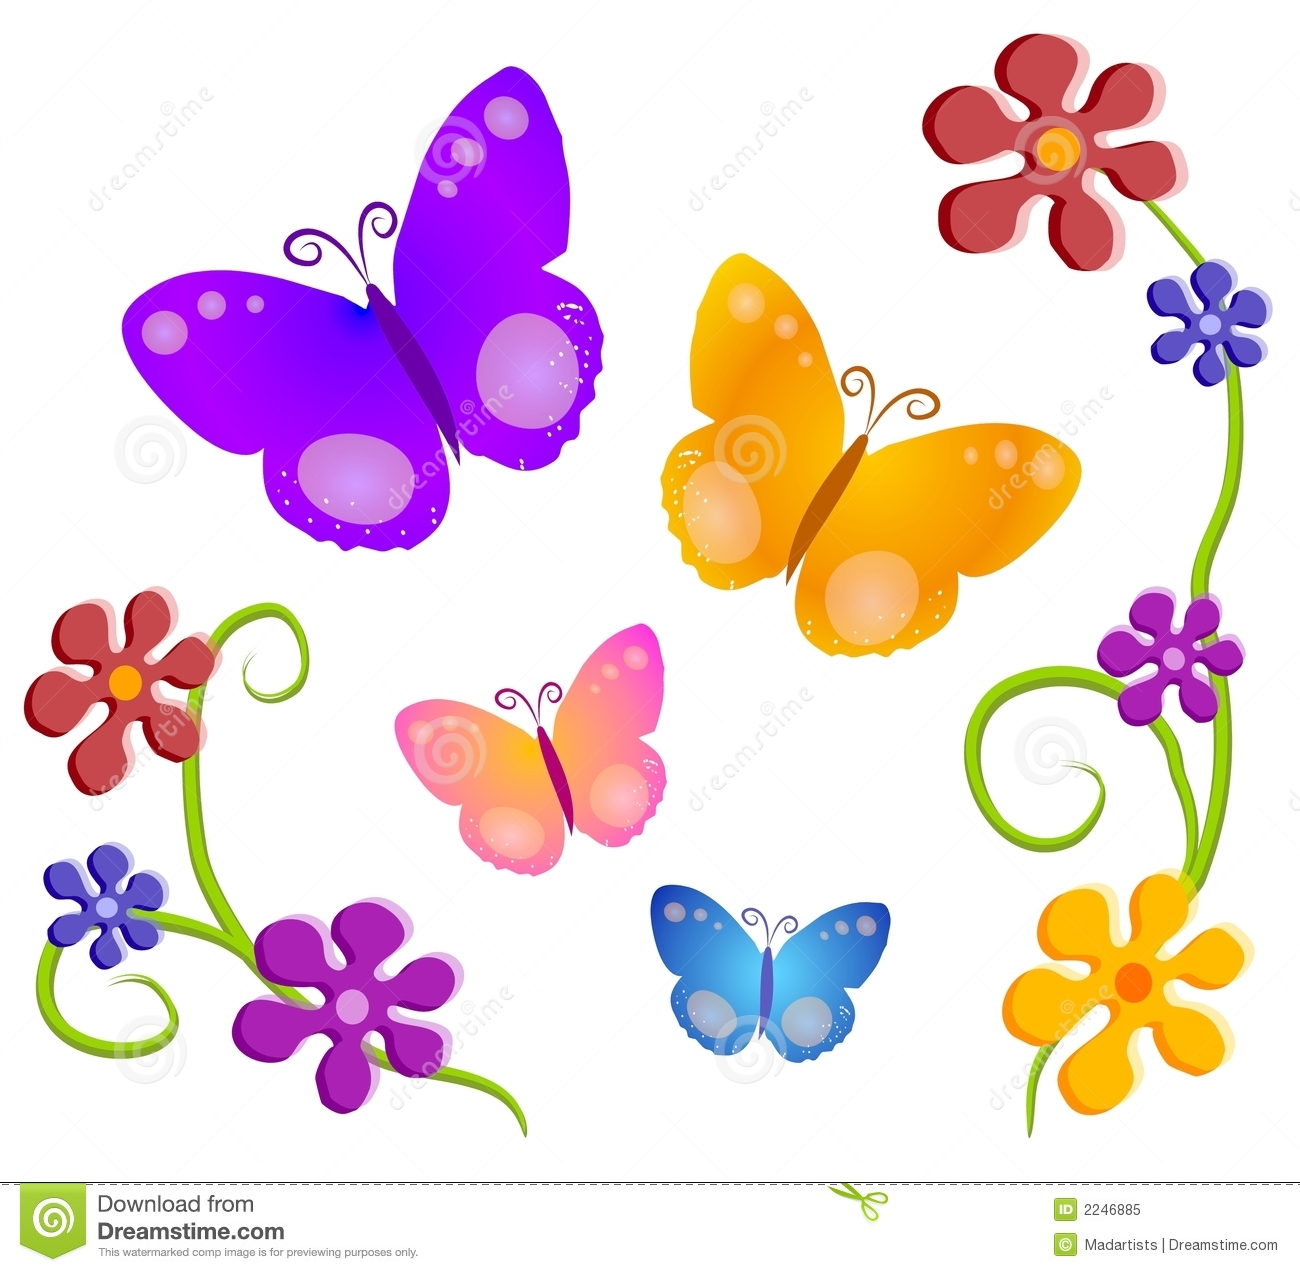 hight resolution of a butterfly and flowers illustration in dark colors and tones of red orange yellow pink blue and purple on an isolated white background